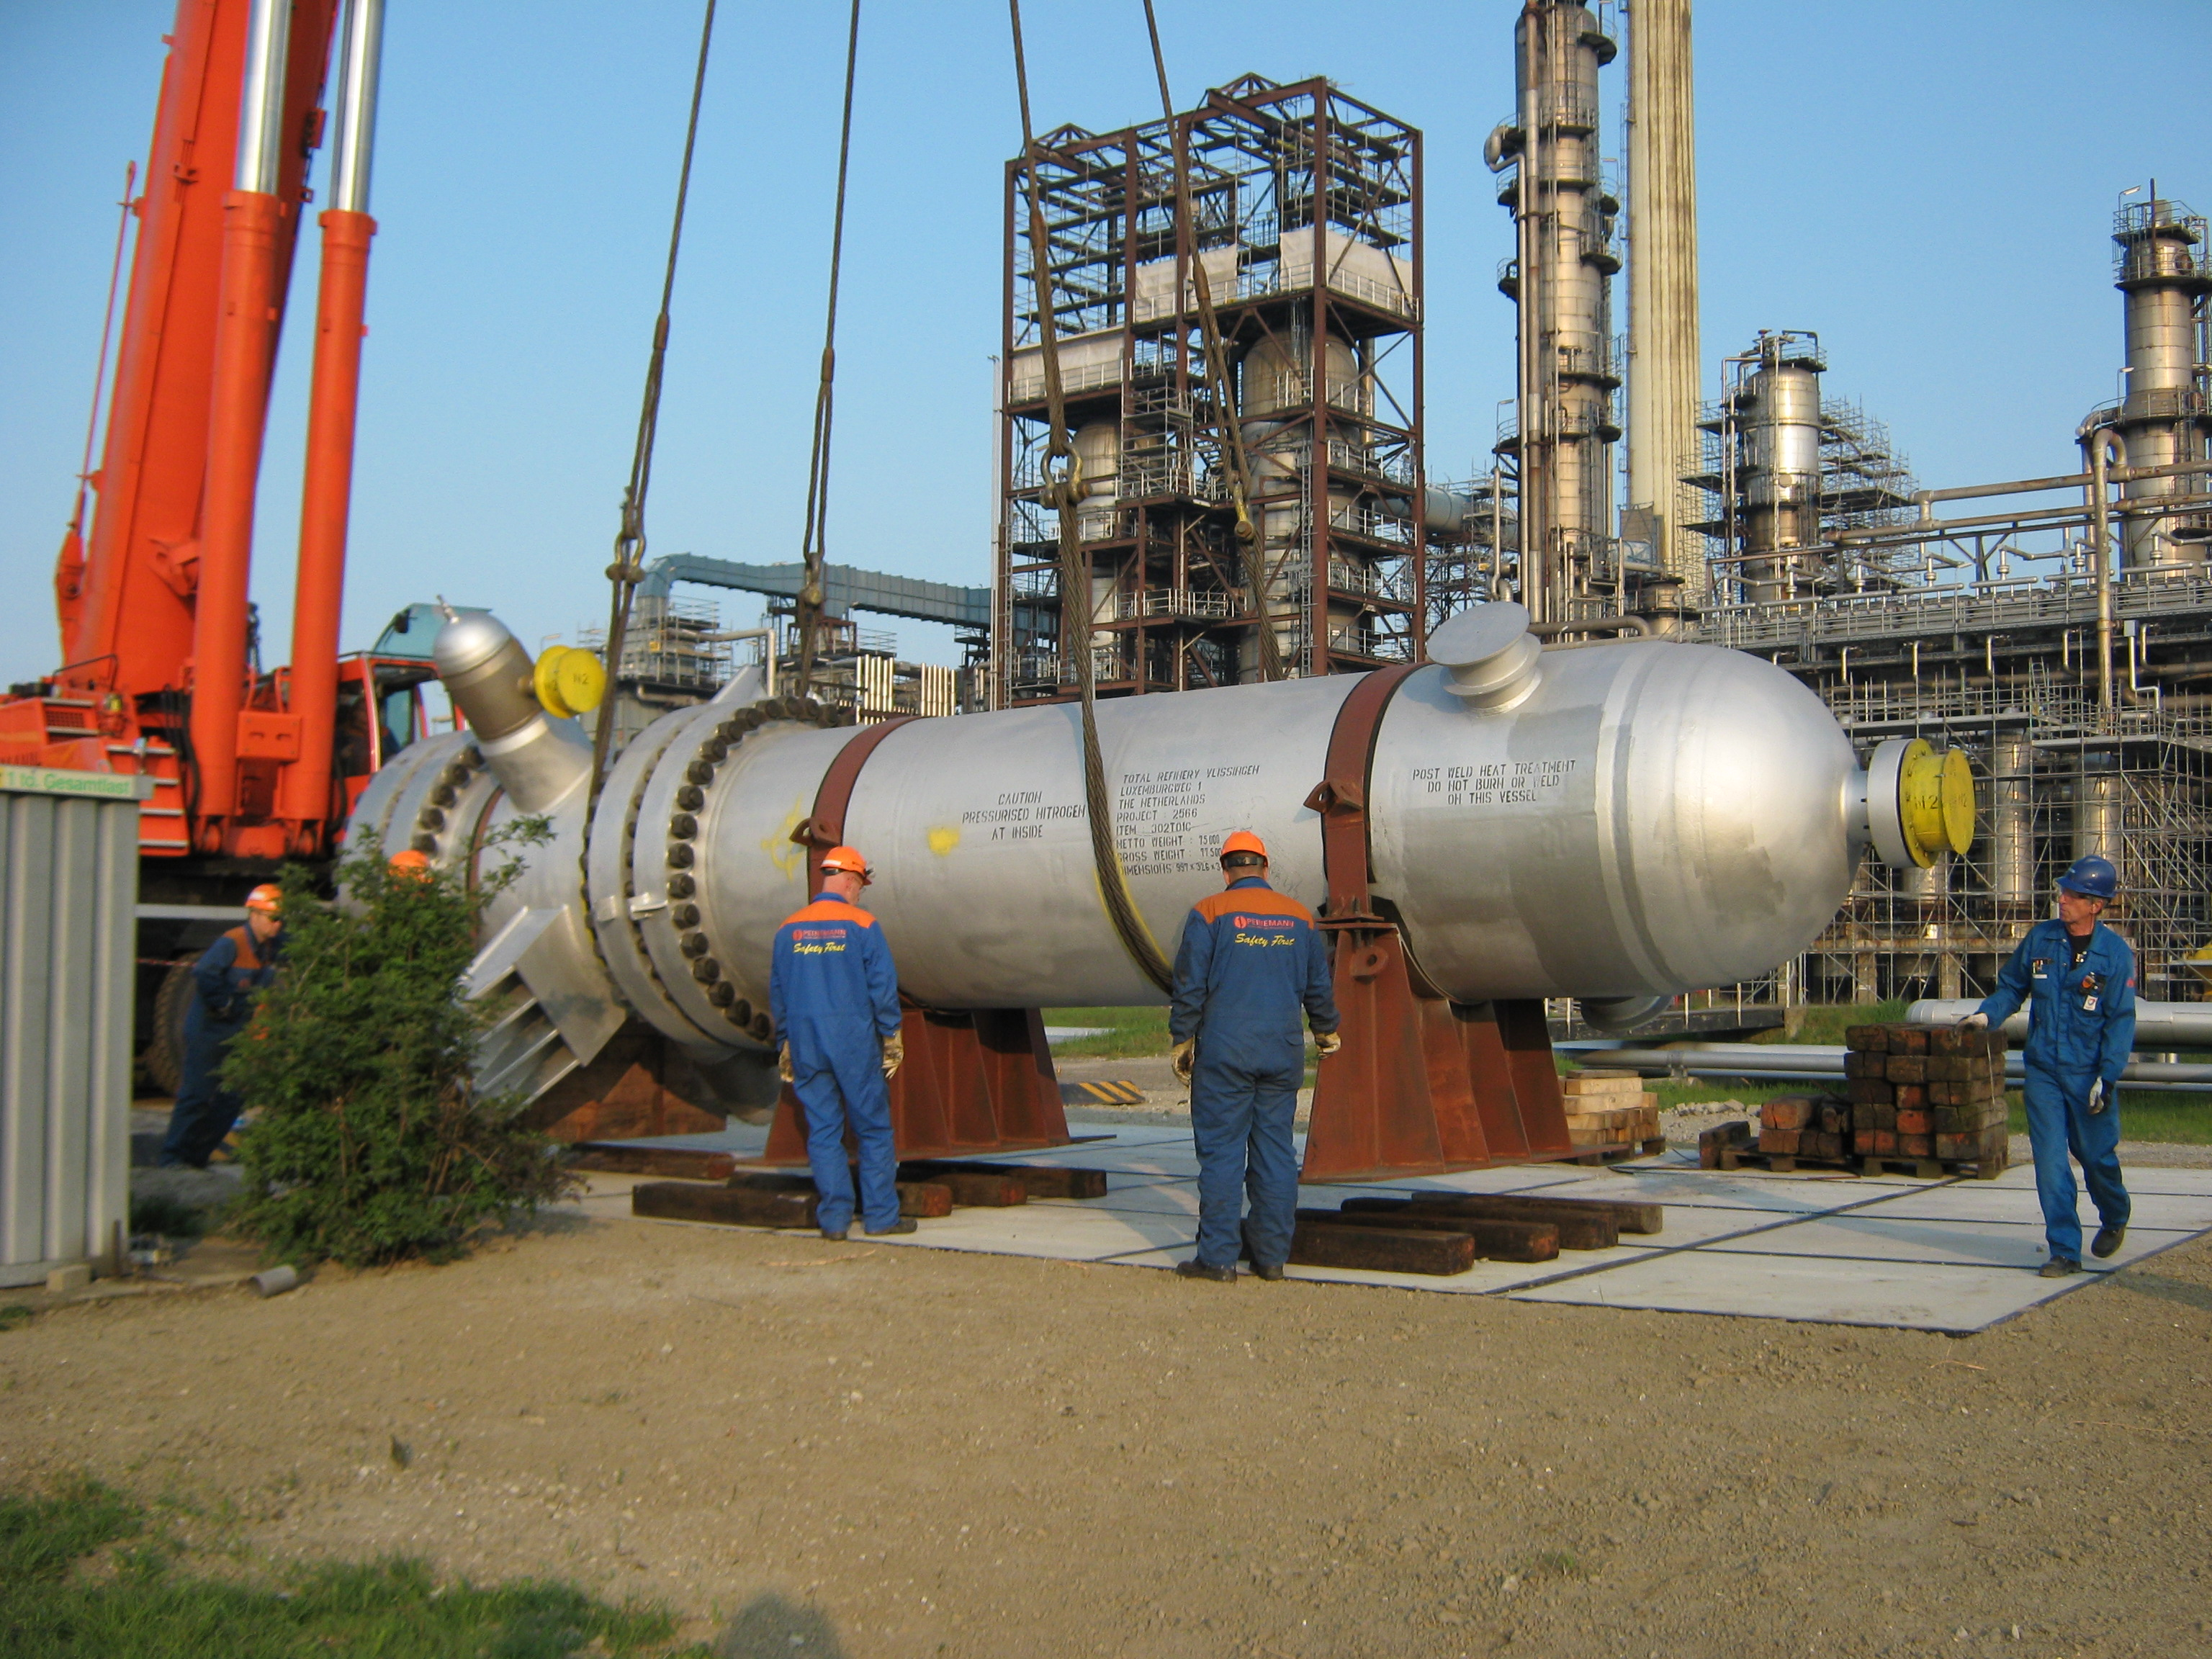 Shell & tube heat exchanger for hydrocracking process